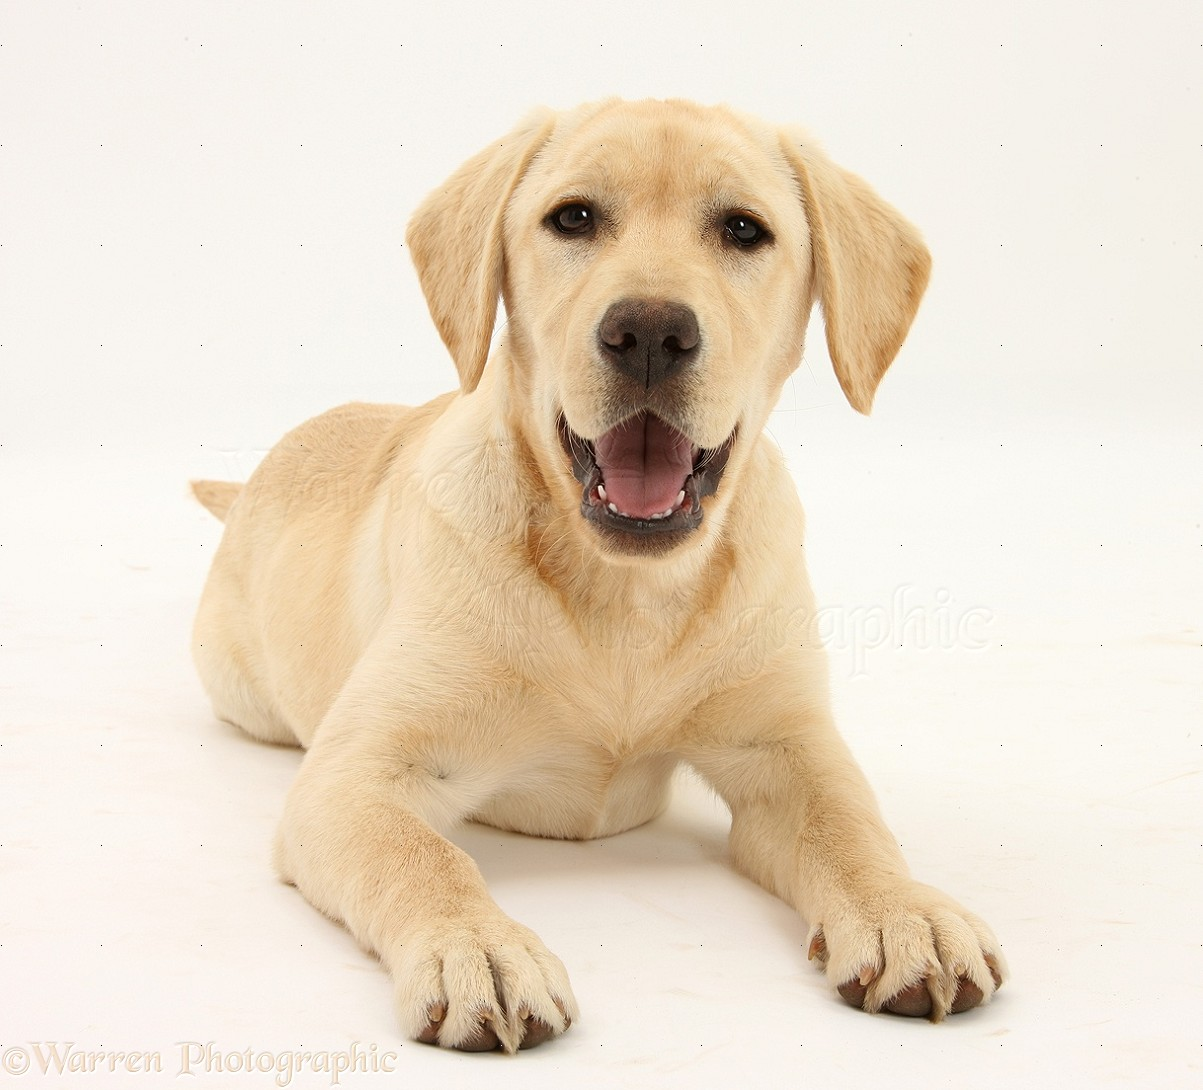 Dog Yellow Labrador Retriever Pup 5 Months Old Photo Wp25752